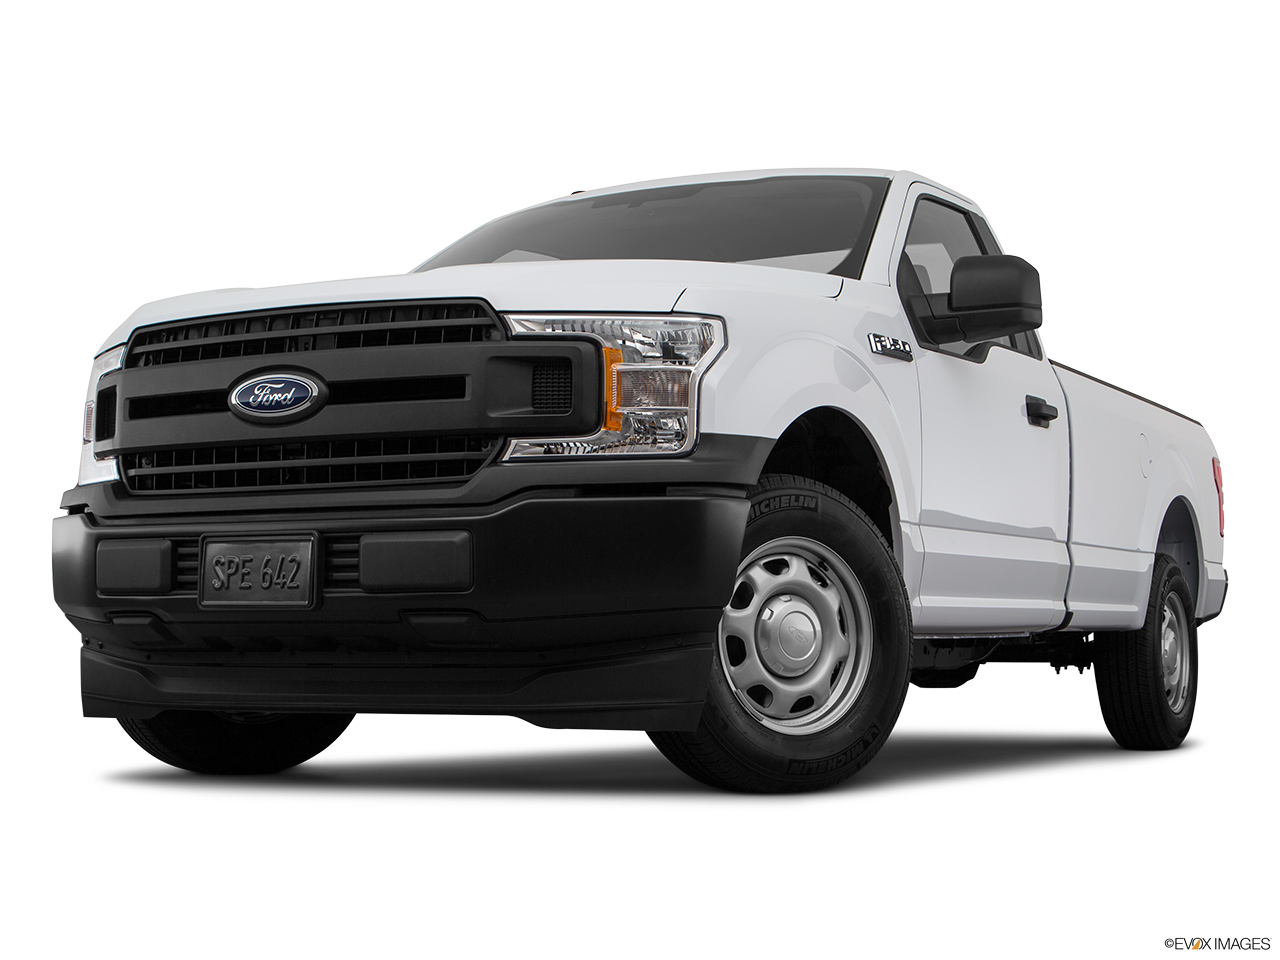 Ford F-150 2018 3.5L Regular Cab XL (2WD), Saudi Arabia, Front angle view, low wide perspective.